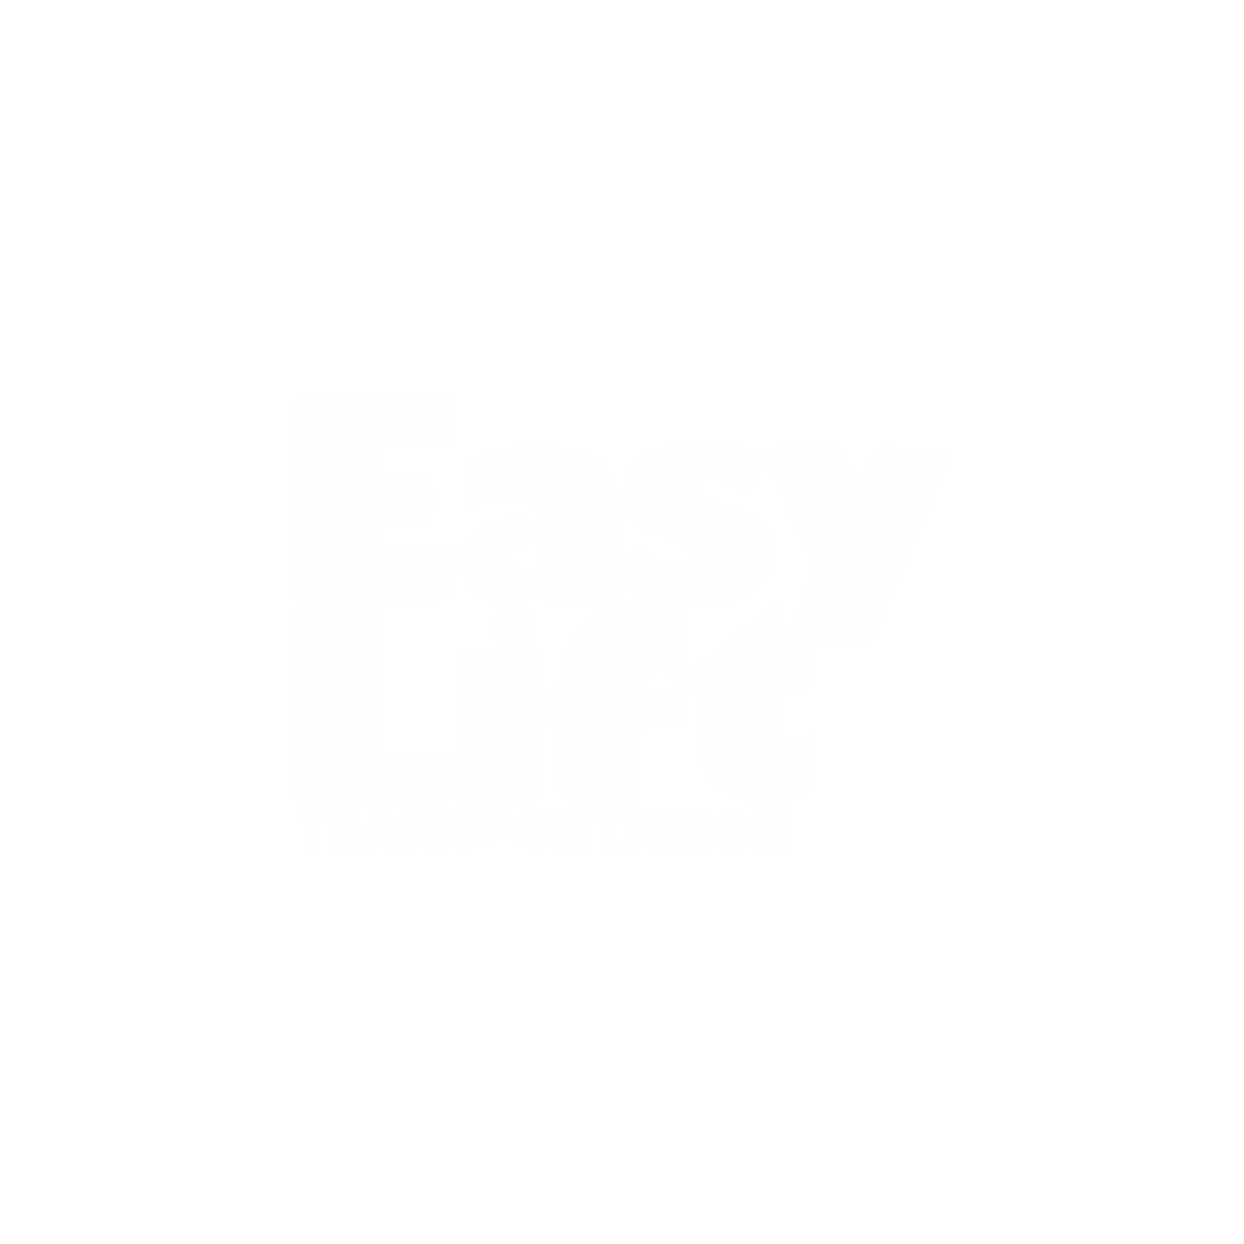 logo-easy-lift-white@2x.png